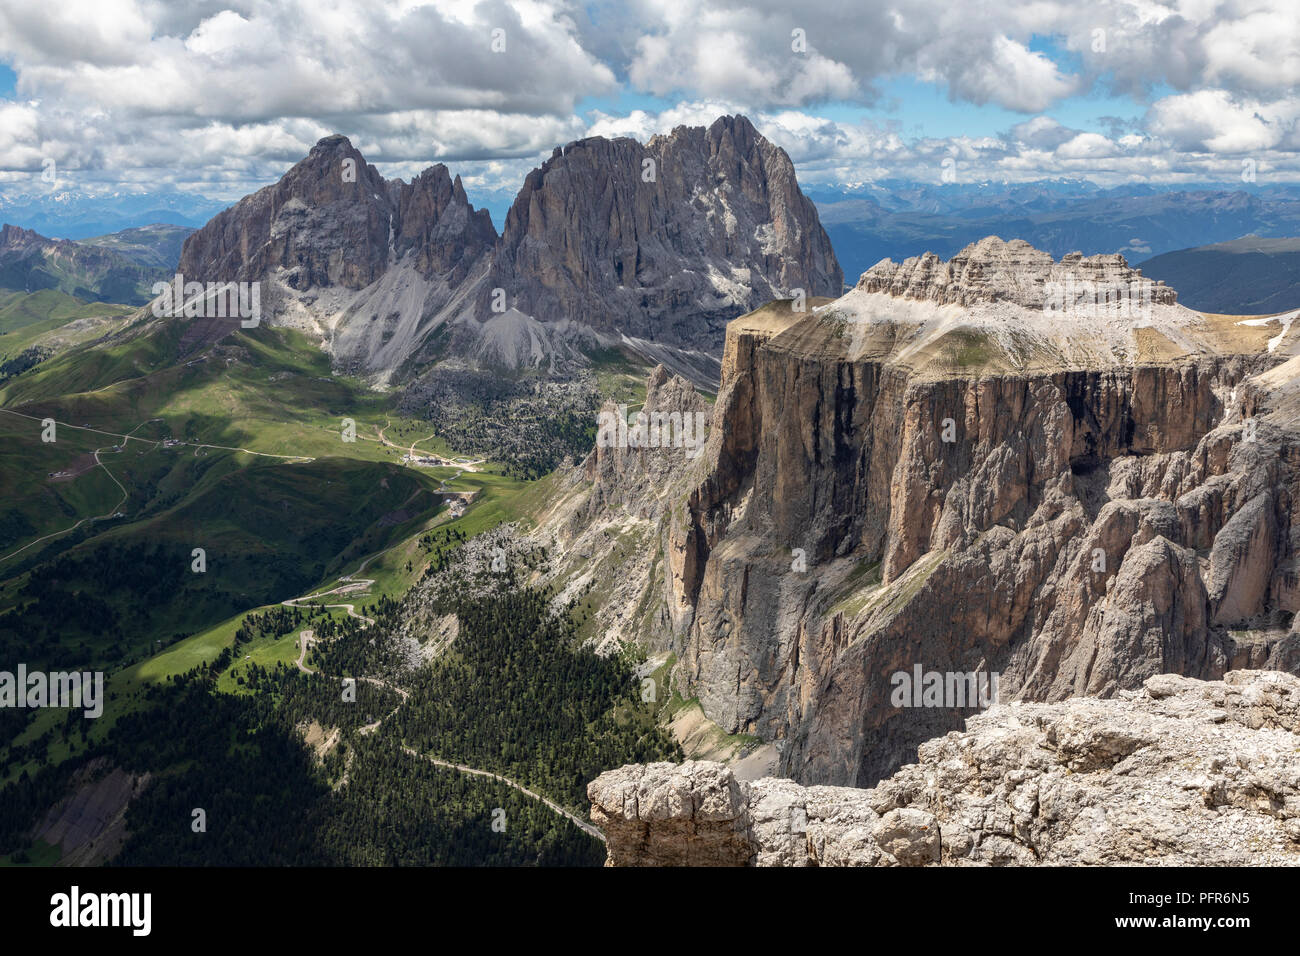 https://c8.alamy.com/comp/PFR6N5/the-sella-towers-in-the-italian-dolomites-from-sass-pordoi-terrazza-delle-dolomiti-PFR6N5.jpg